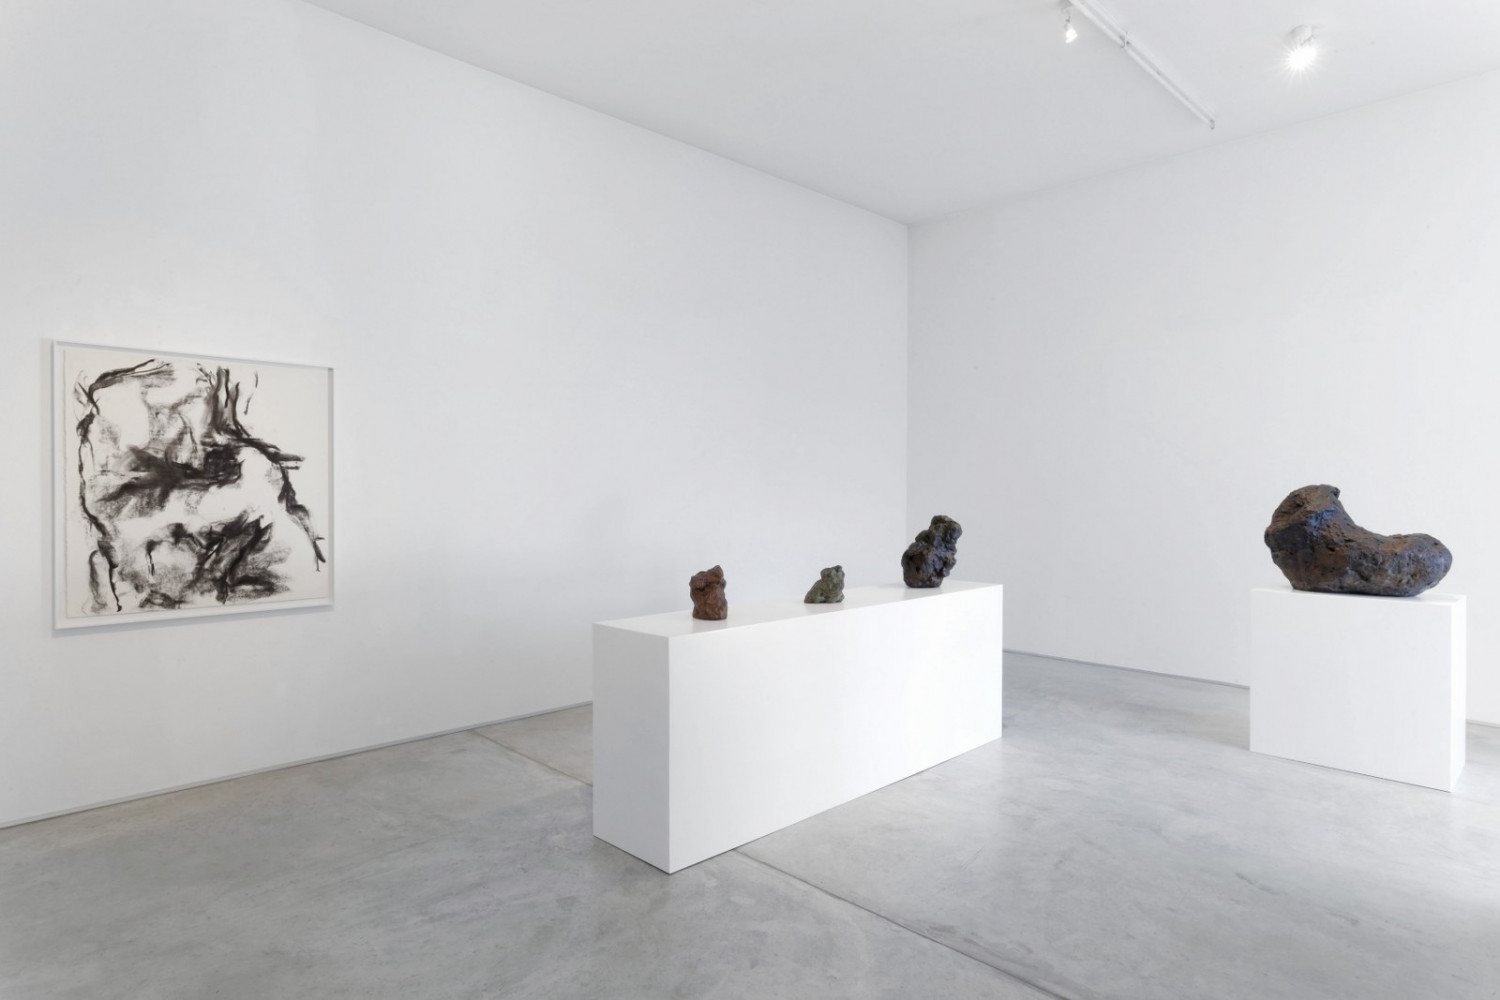 William Tucker, 'Sculture', Installation view